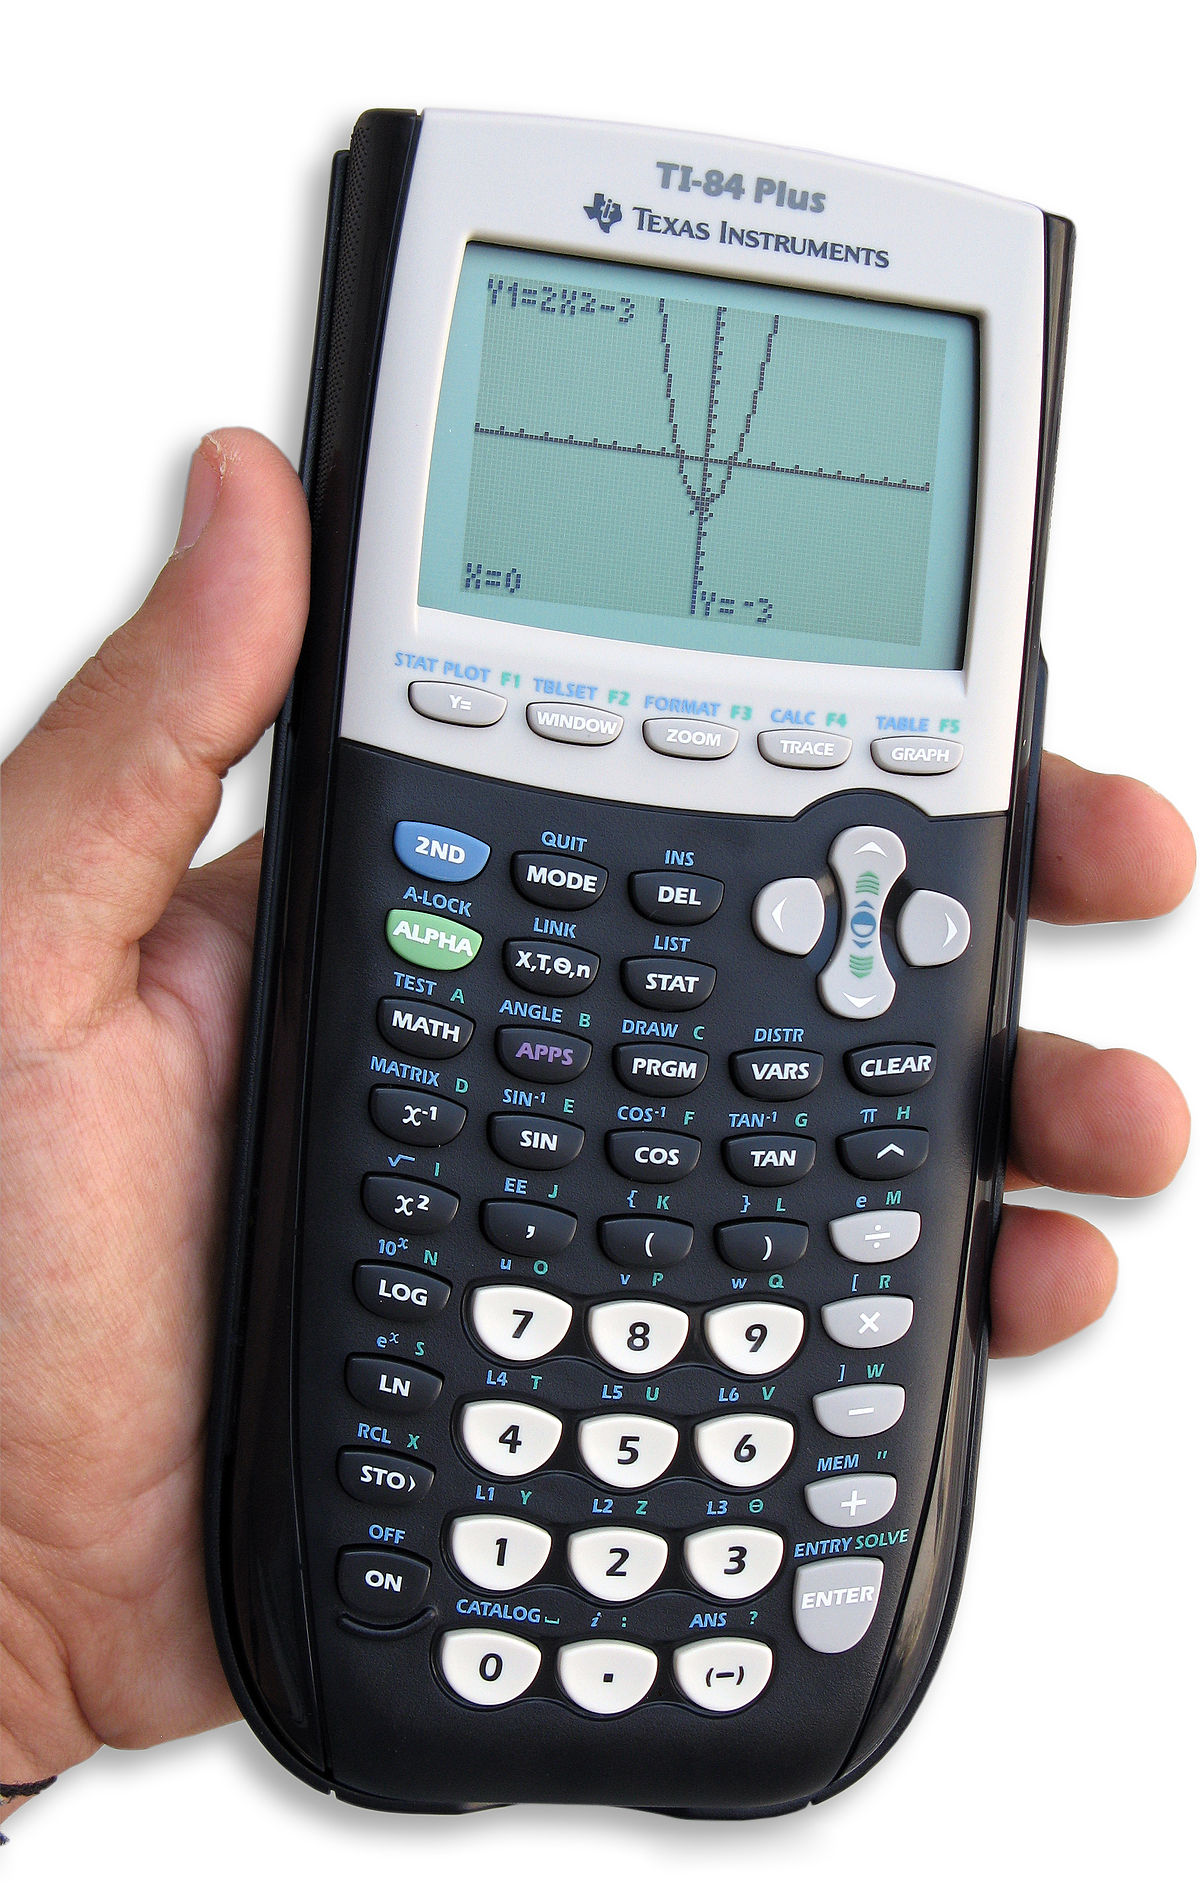 TI-84 Plus series - Wikipedia